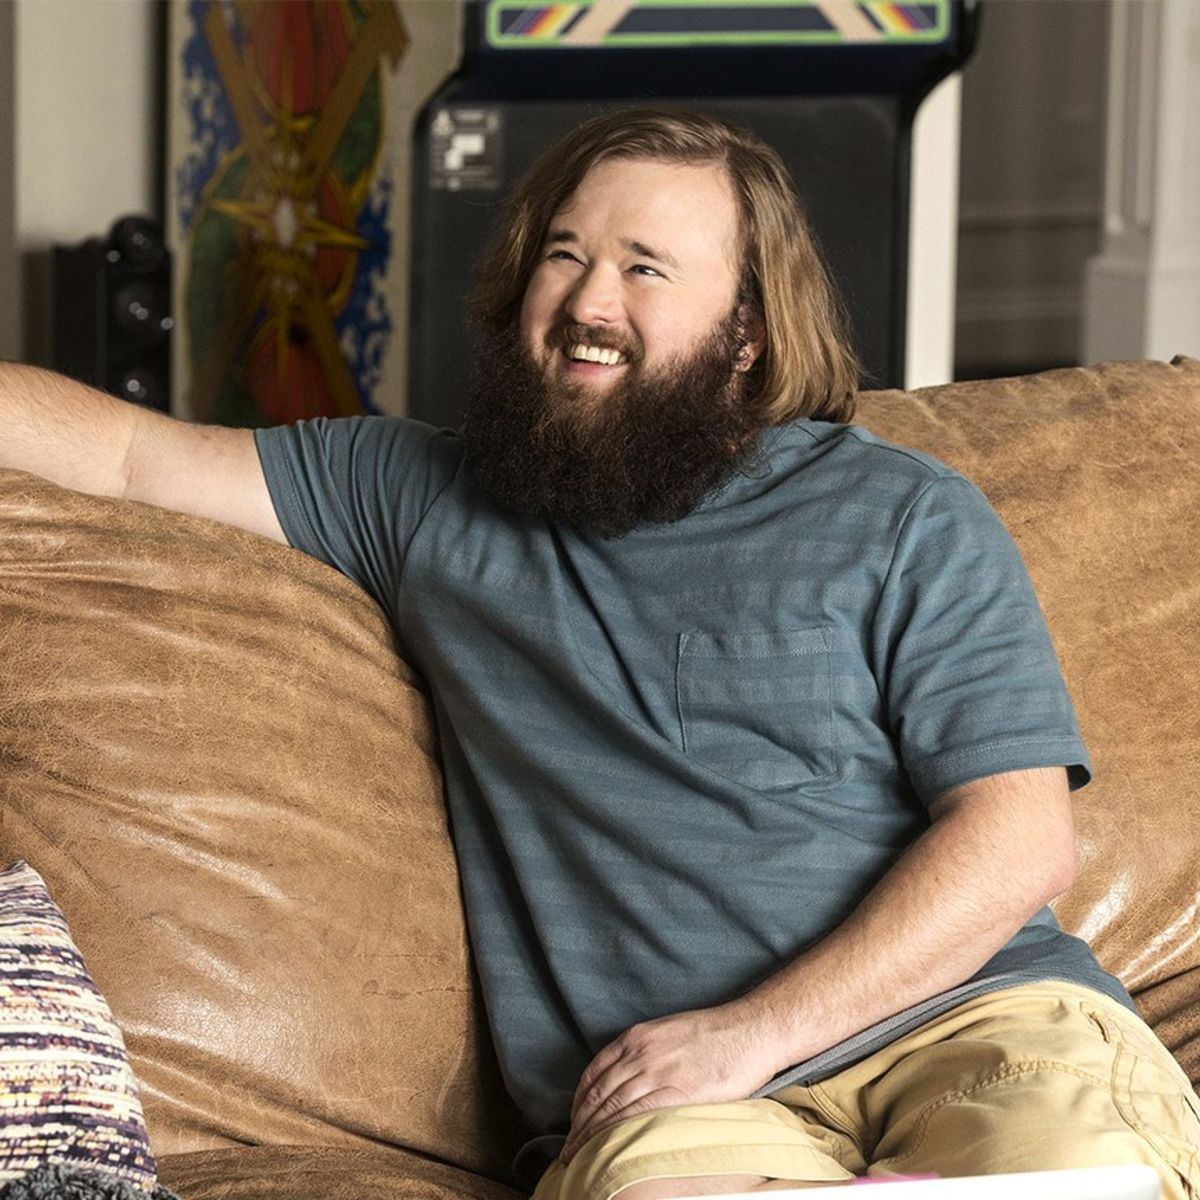 haley-joel-osment.jpg